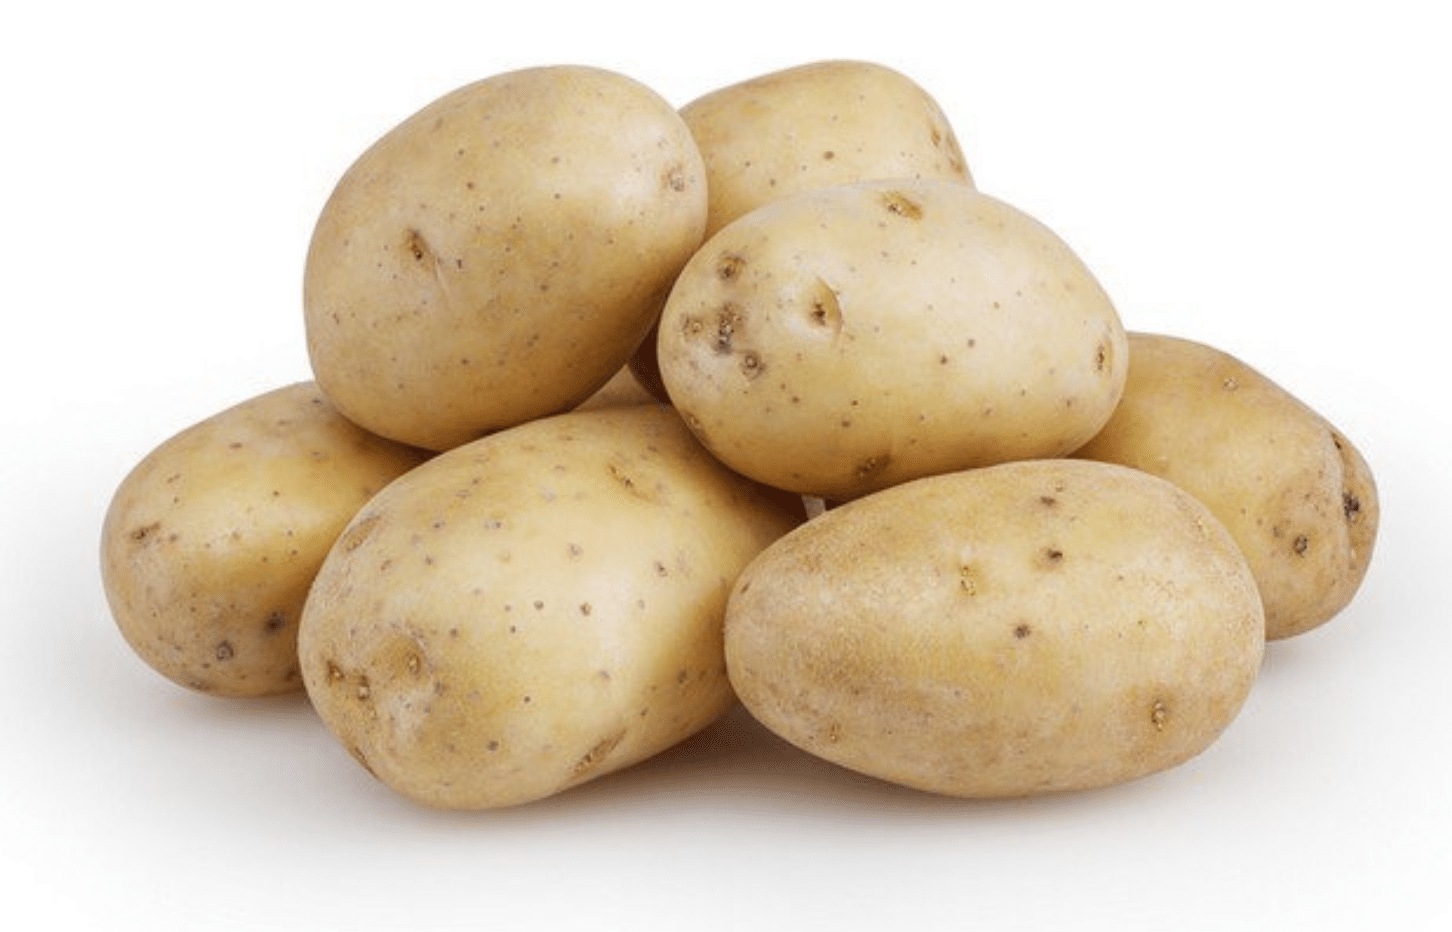 are potatoes paleo? paleo concensus report by the paleo foundation